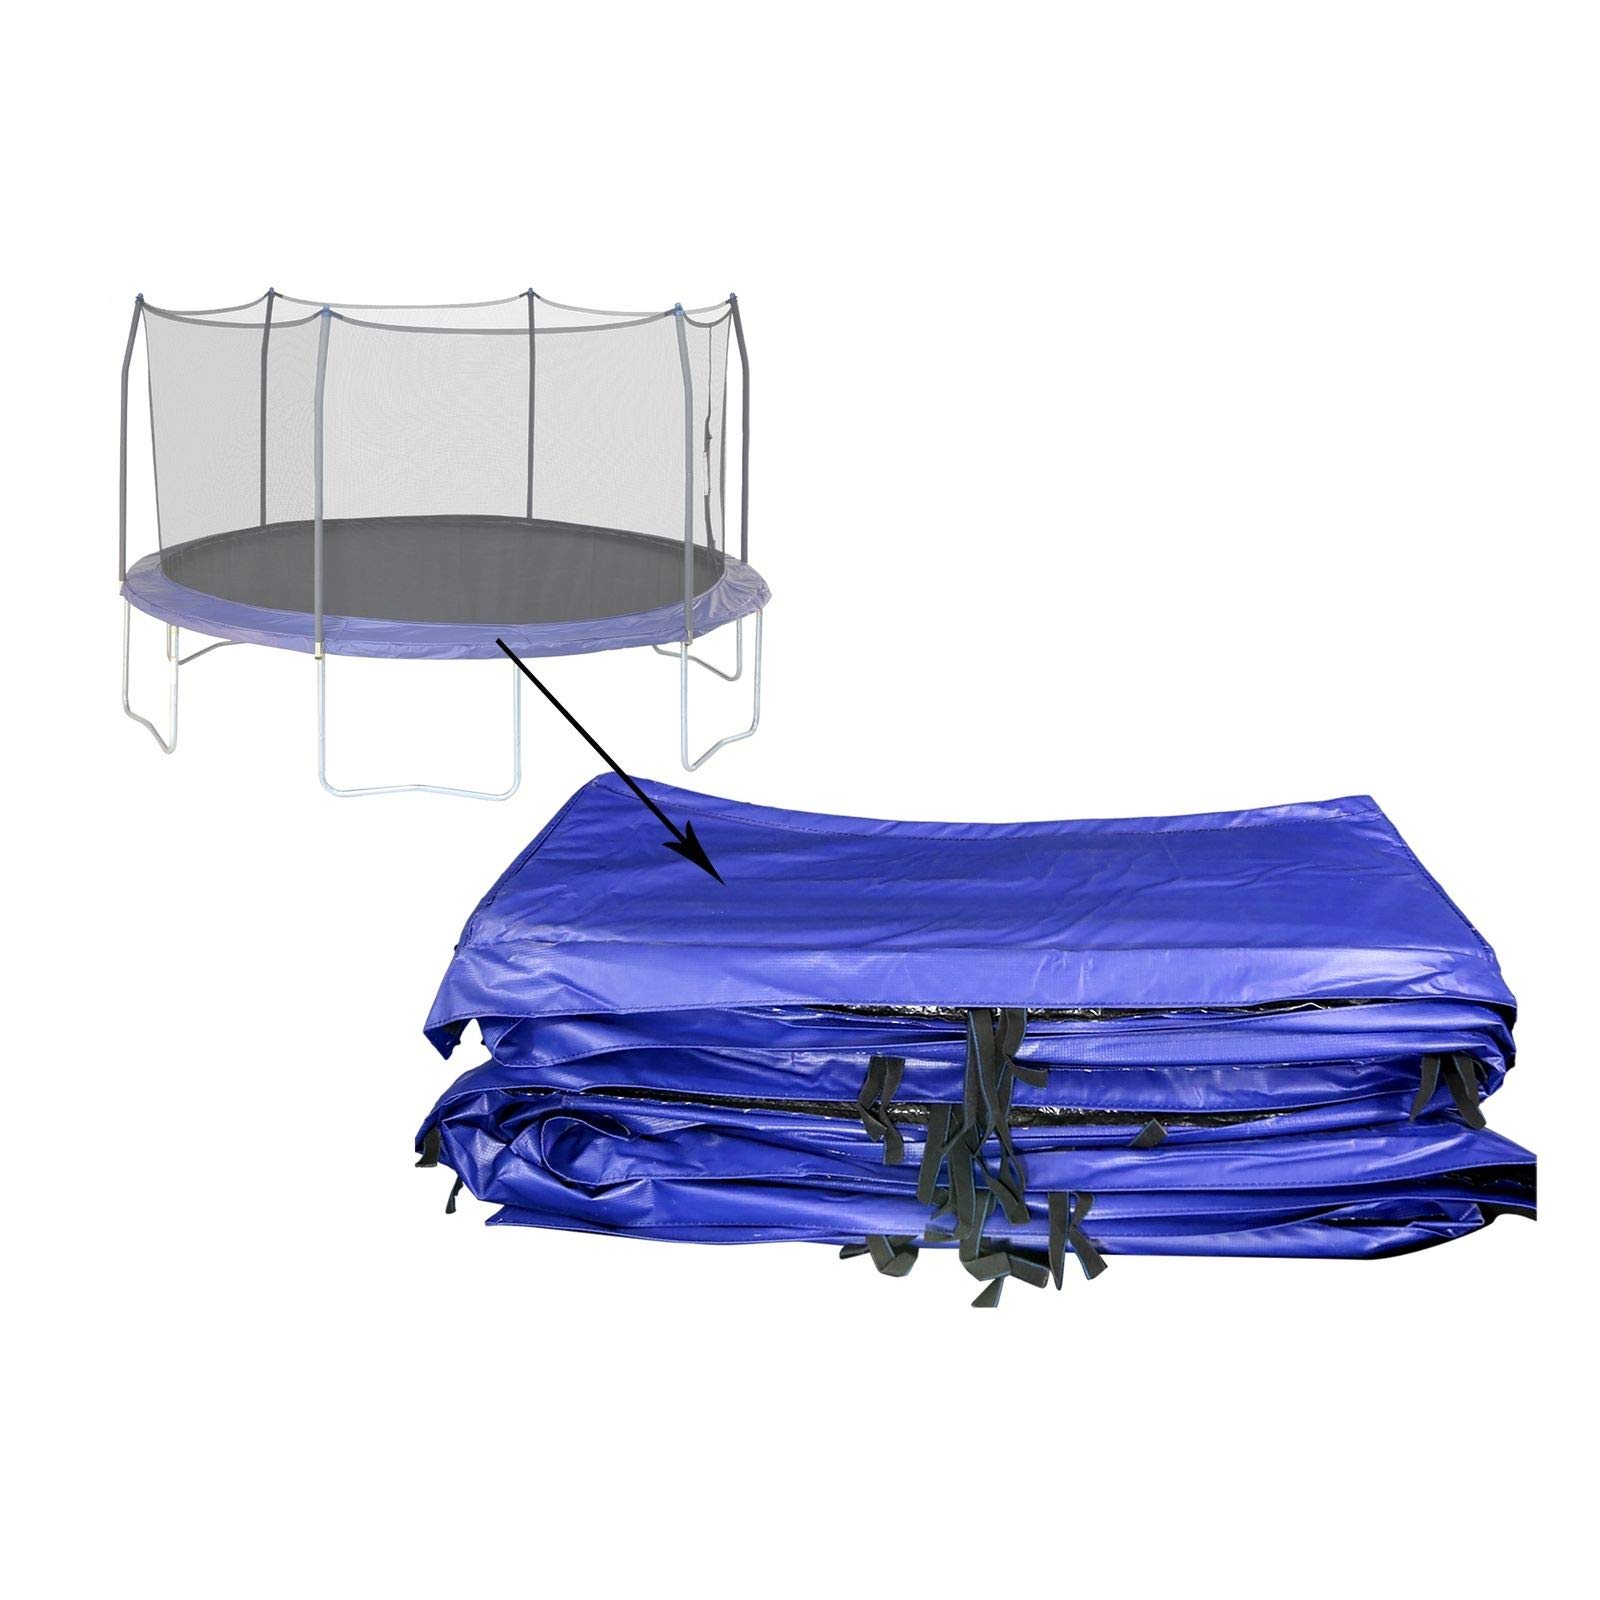 Trampolines Replacement Parts 15 ft Skywalker Accesories. 15' Round Spring Pad Blue Vinyl-Coated for Trampoline. Ultra High UV Protection. Compatibility SWTC15 by Skywalkers Trampolines genuine component (Image #1)